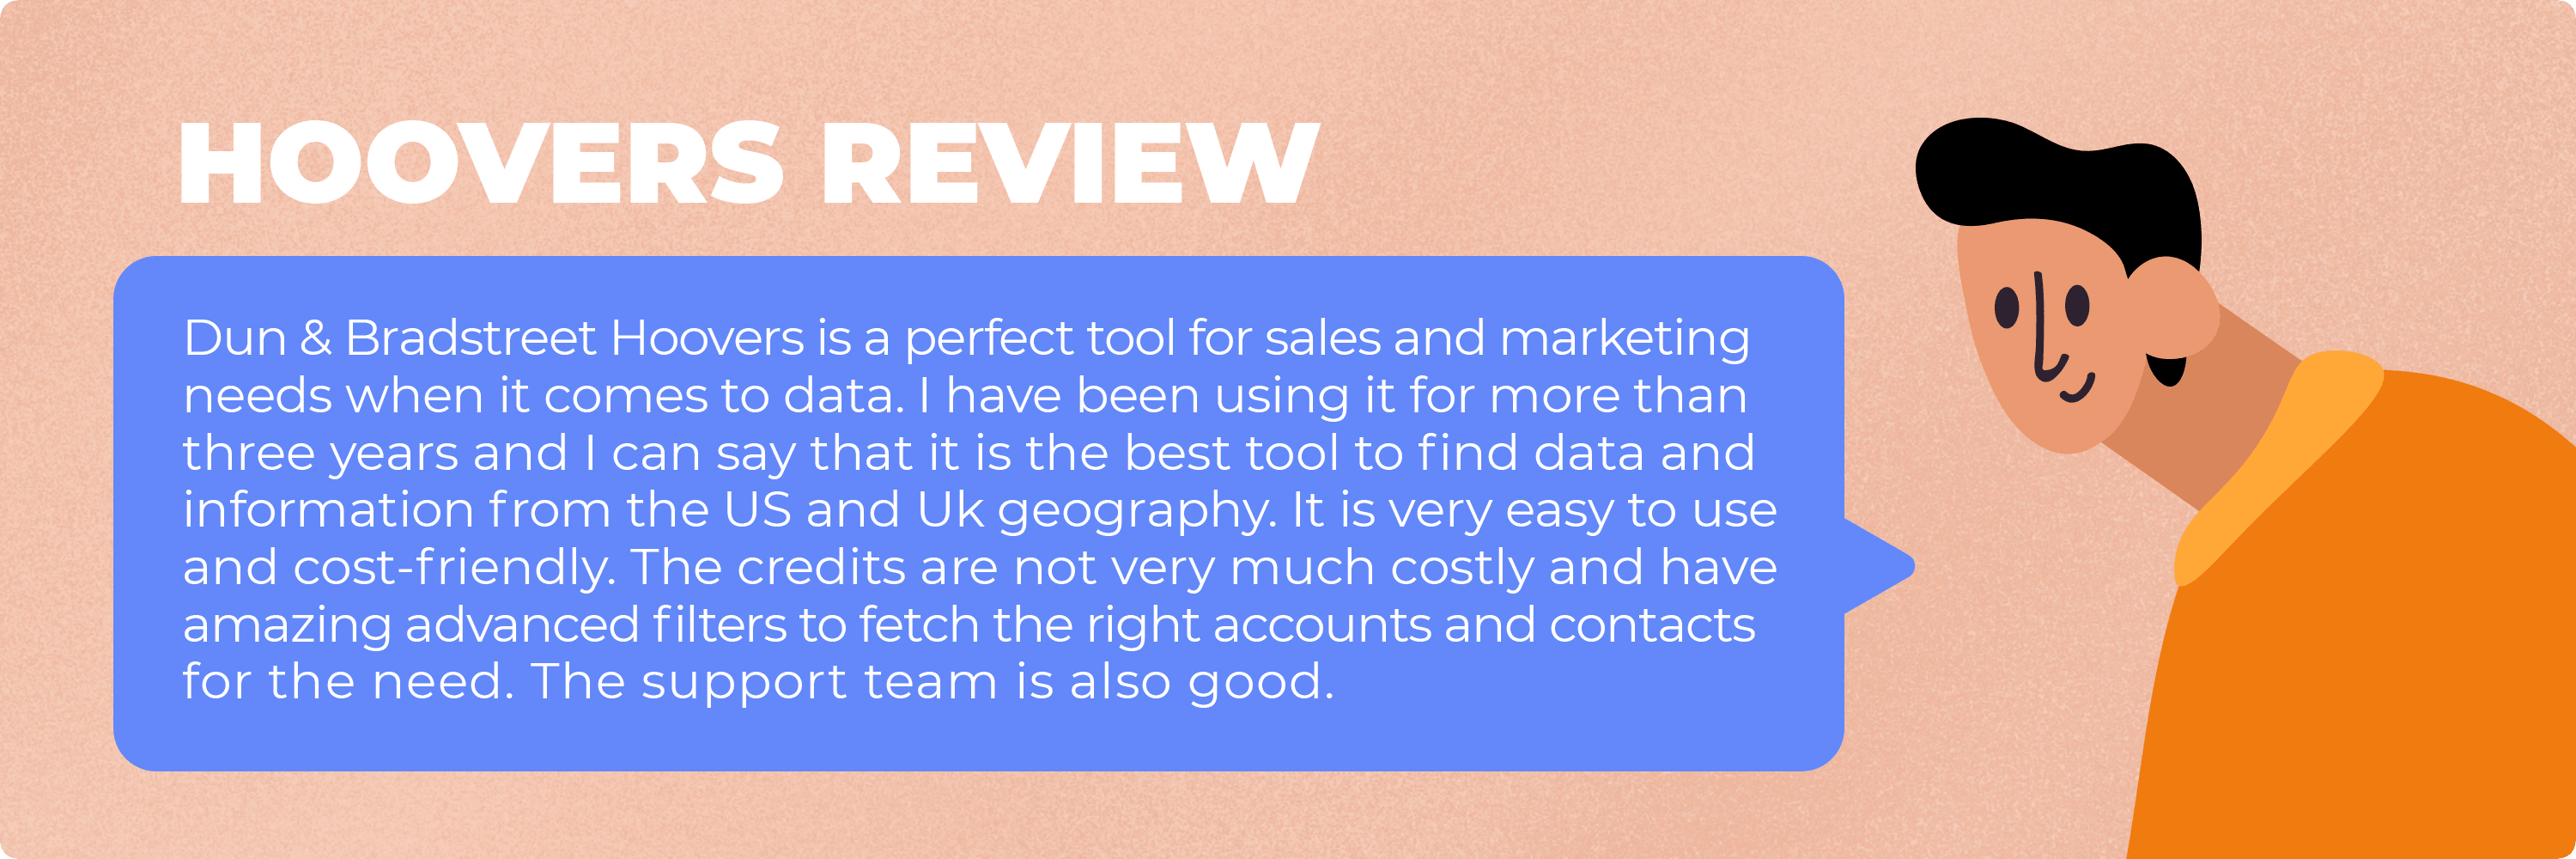 hoovers review